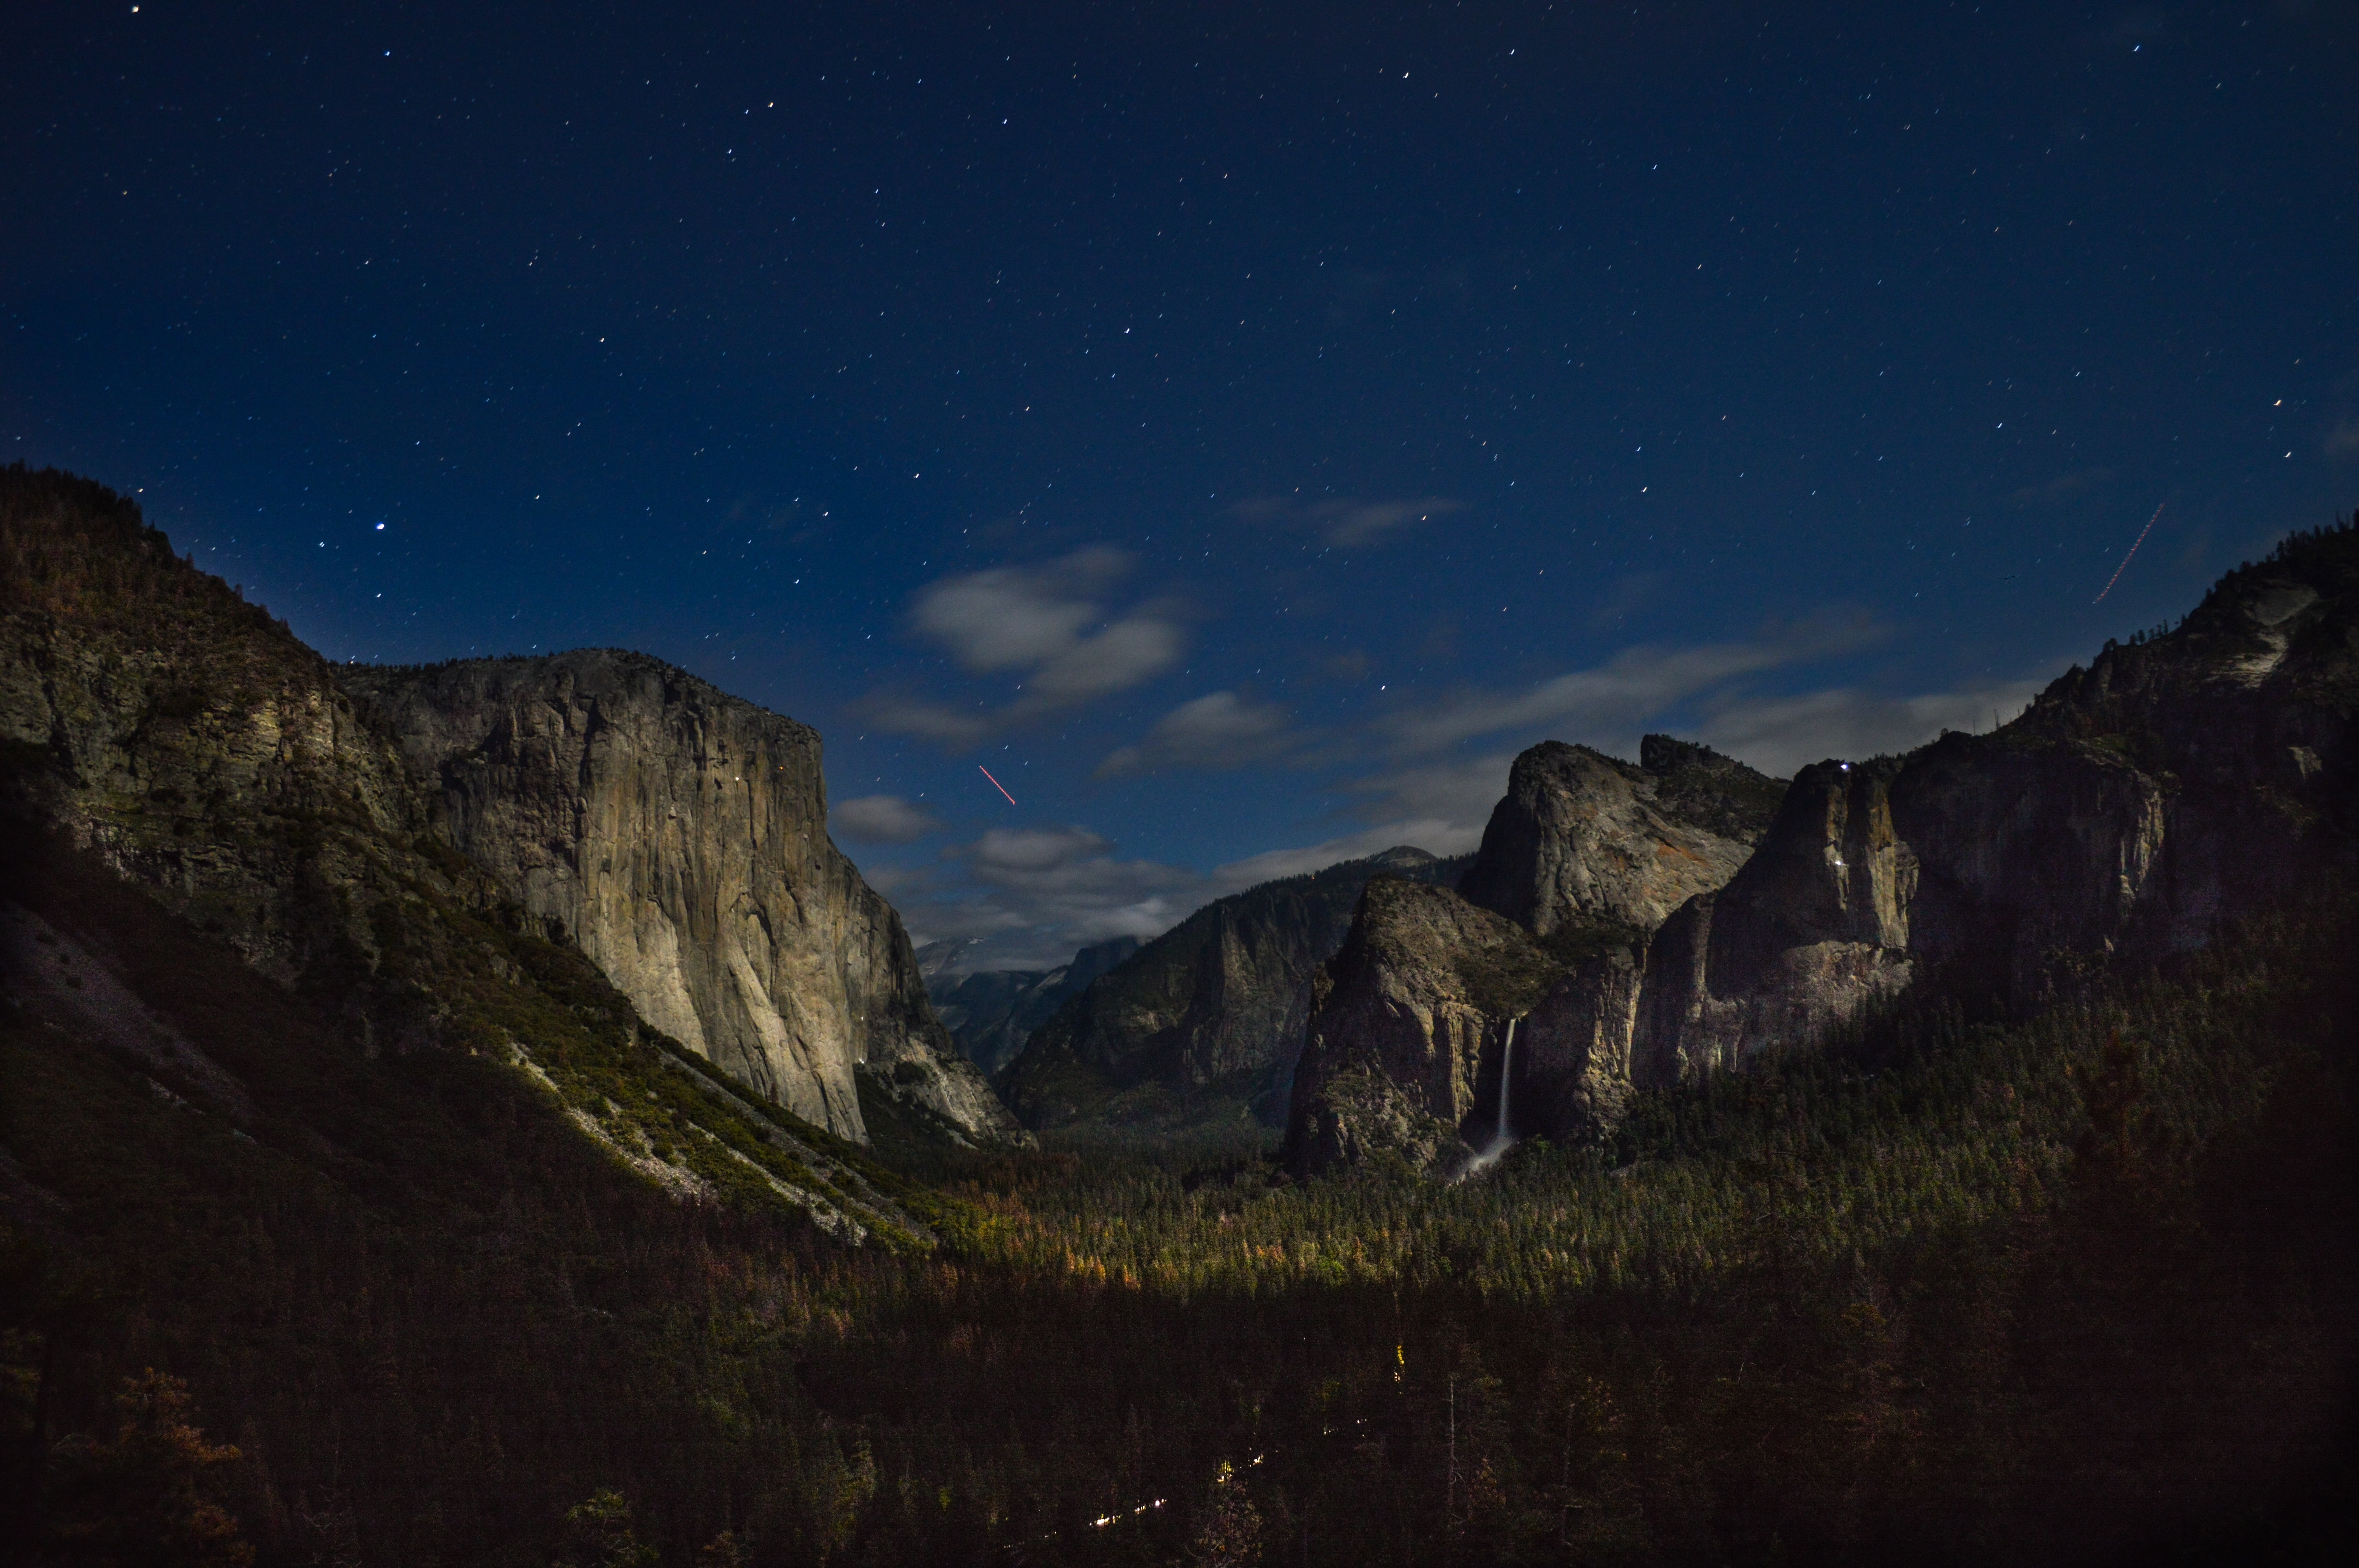 Stars and clouds in the night sky over Yosemite Valley